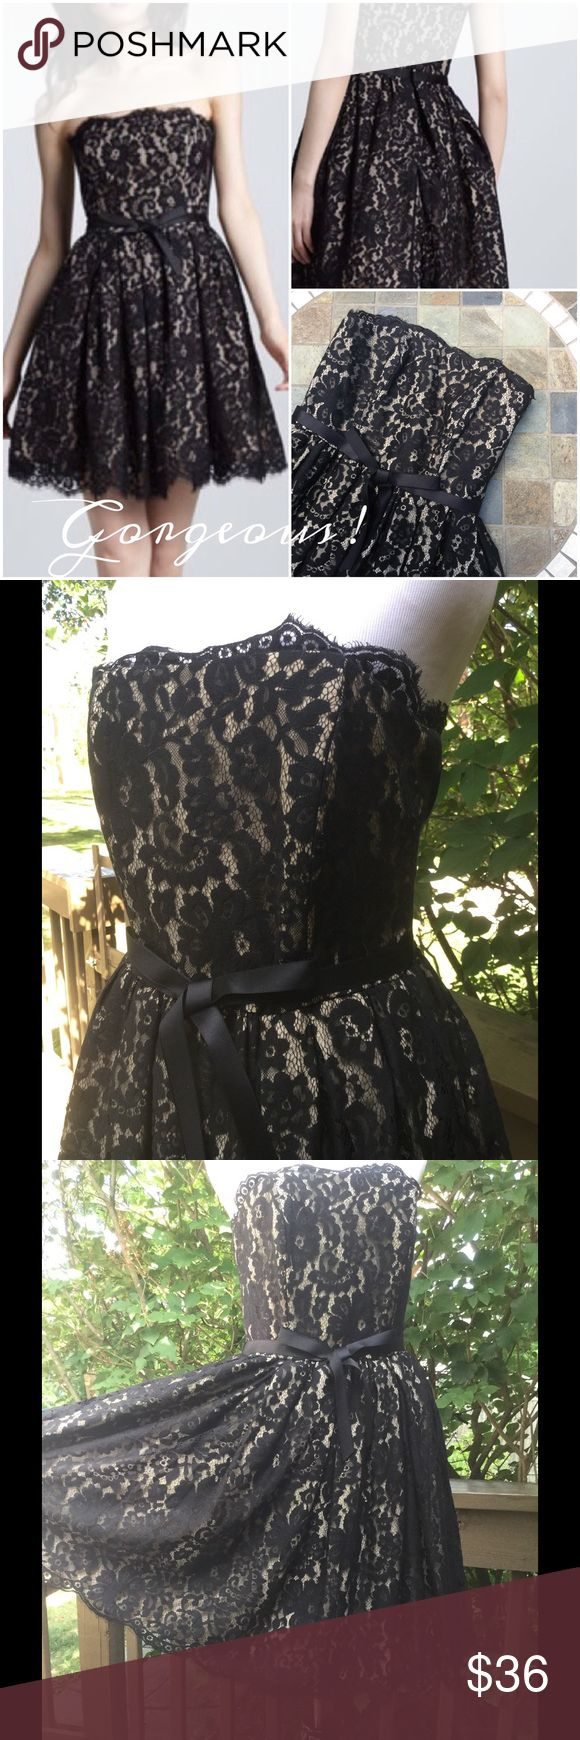 Robert Rodriguez Gorgeous Dress !  Robert Rodriguez collaboration with Neiman Marcus & Target ! Black lace over a nude dress ! Fit & flare ! Built in bra with some stays in bodice ! Scalloped hem & neckline ! Black ribbon around waist ! Hidden back zipper ! Beautifully made dress ! Worn once !  Robert Rodriguez Dresses Strapless